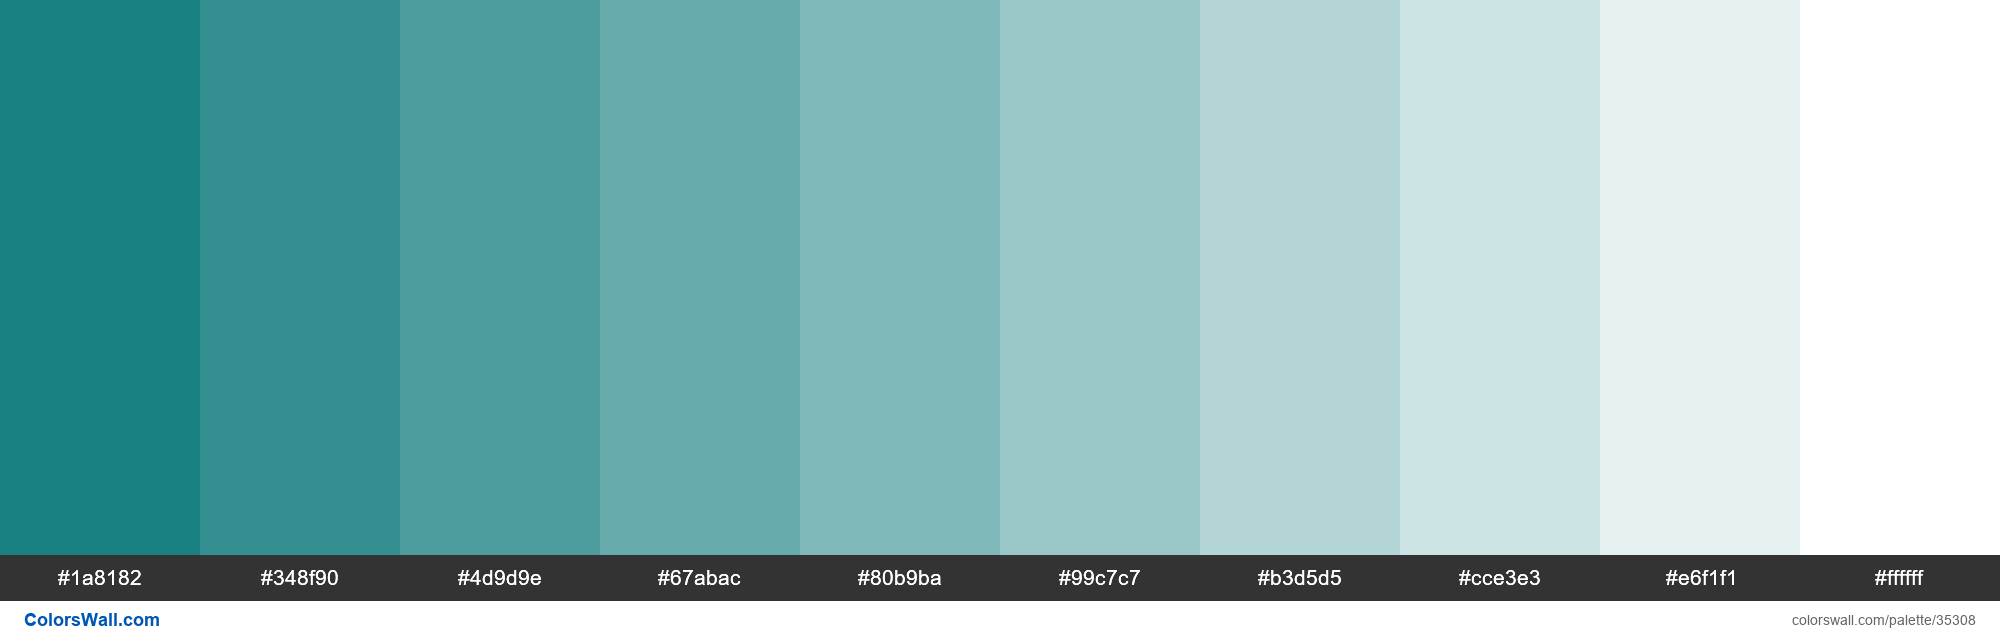 Tints XKCD Color deep turquoise #017374 hex - #35308